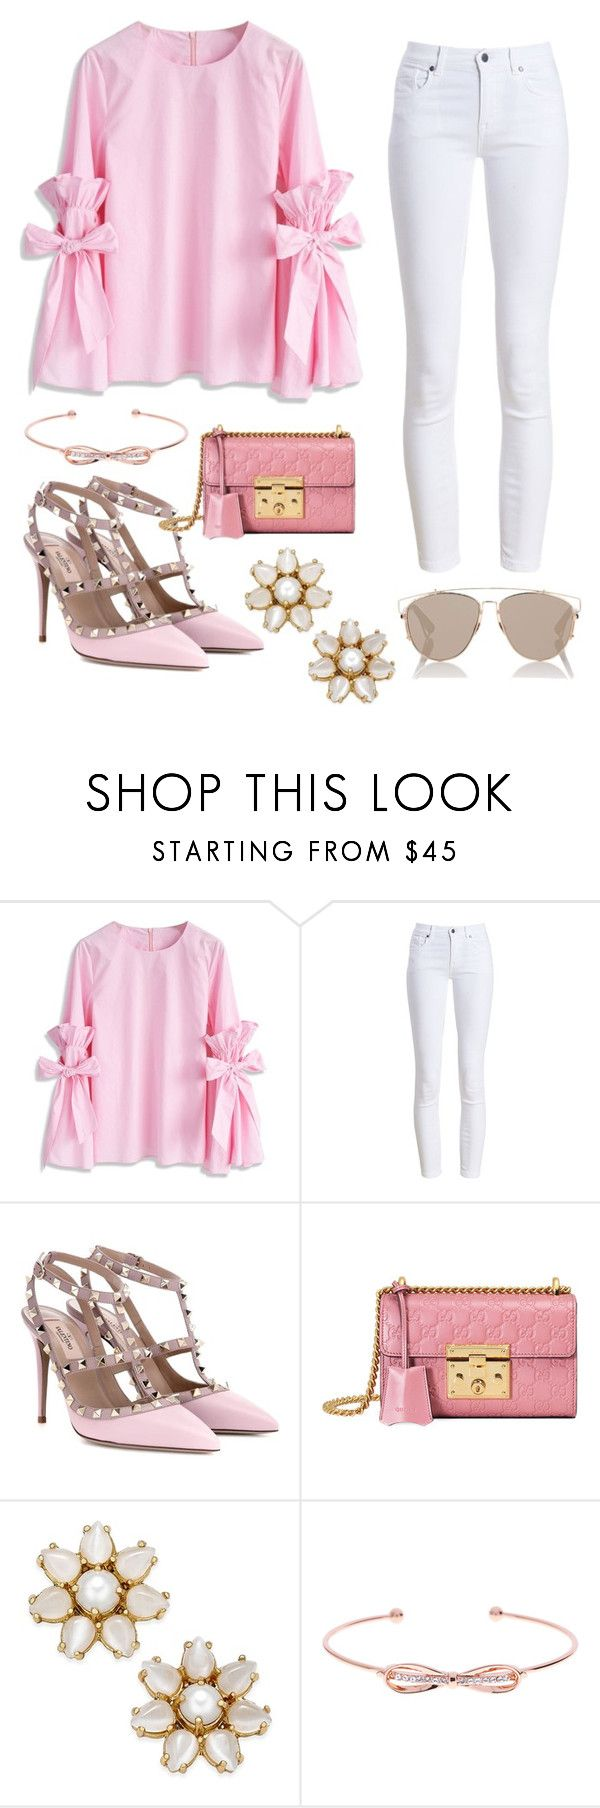 """Casual pink"" by fificn ❤ liked on Polyvore featuring Chicwish, Barbour, Valentino, Gucci, Kate Spade, Ted Baker and Christian Dior"